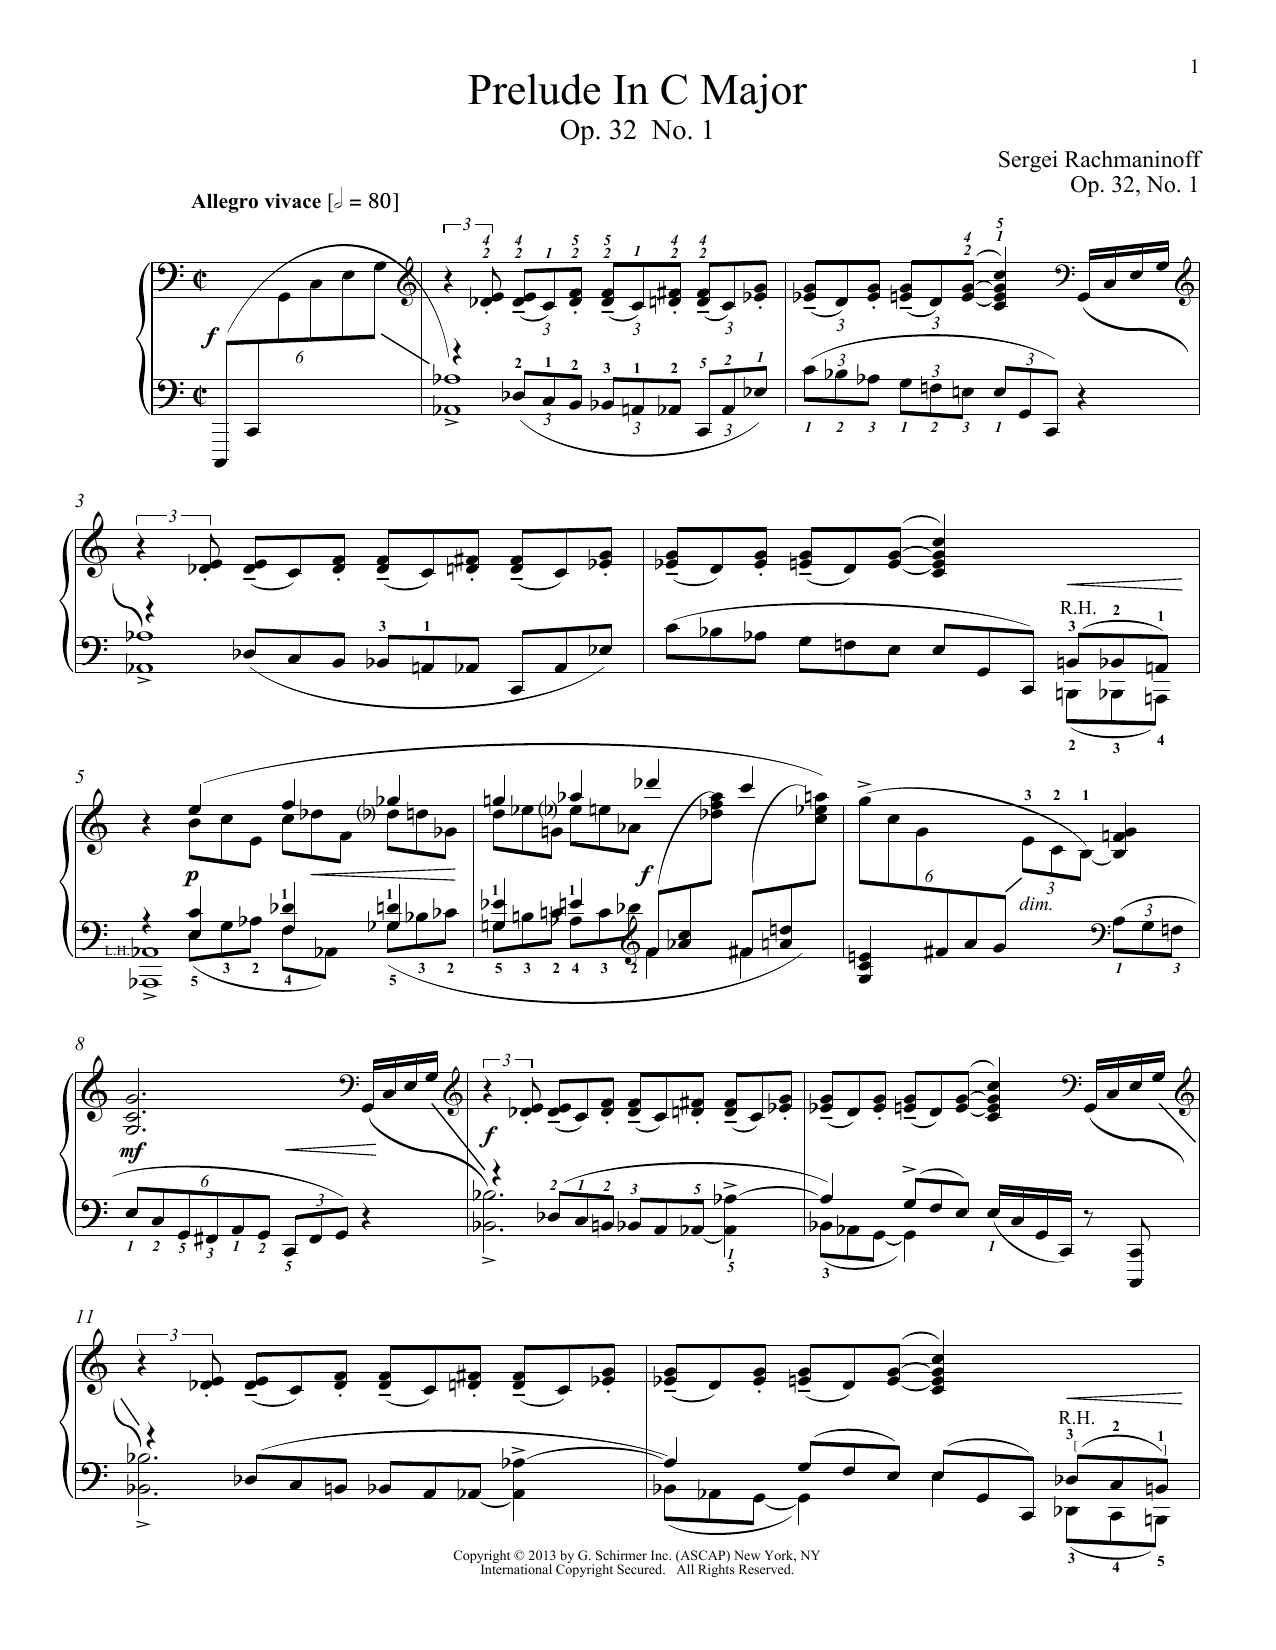 Alexandre Dossin Prelude In C Major, Op. 32, No. 1 sheet music notes and chords